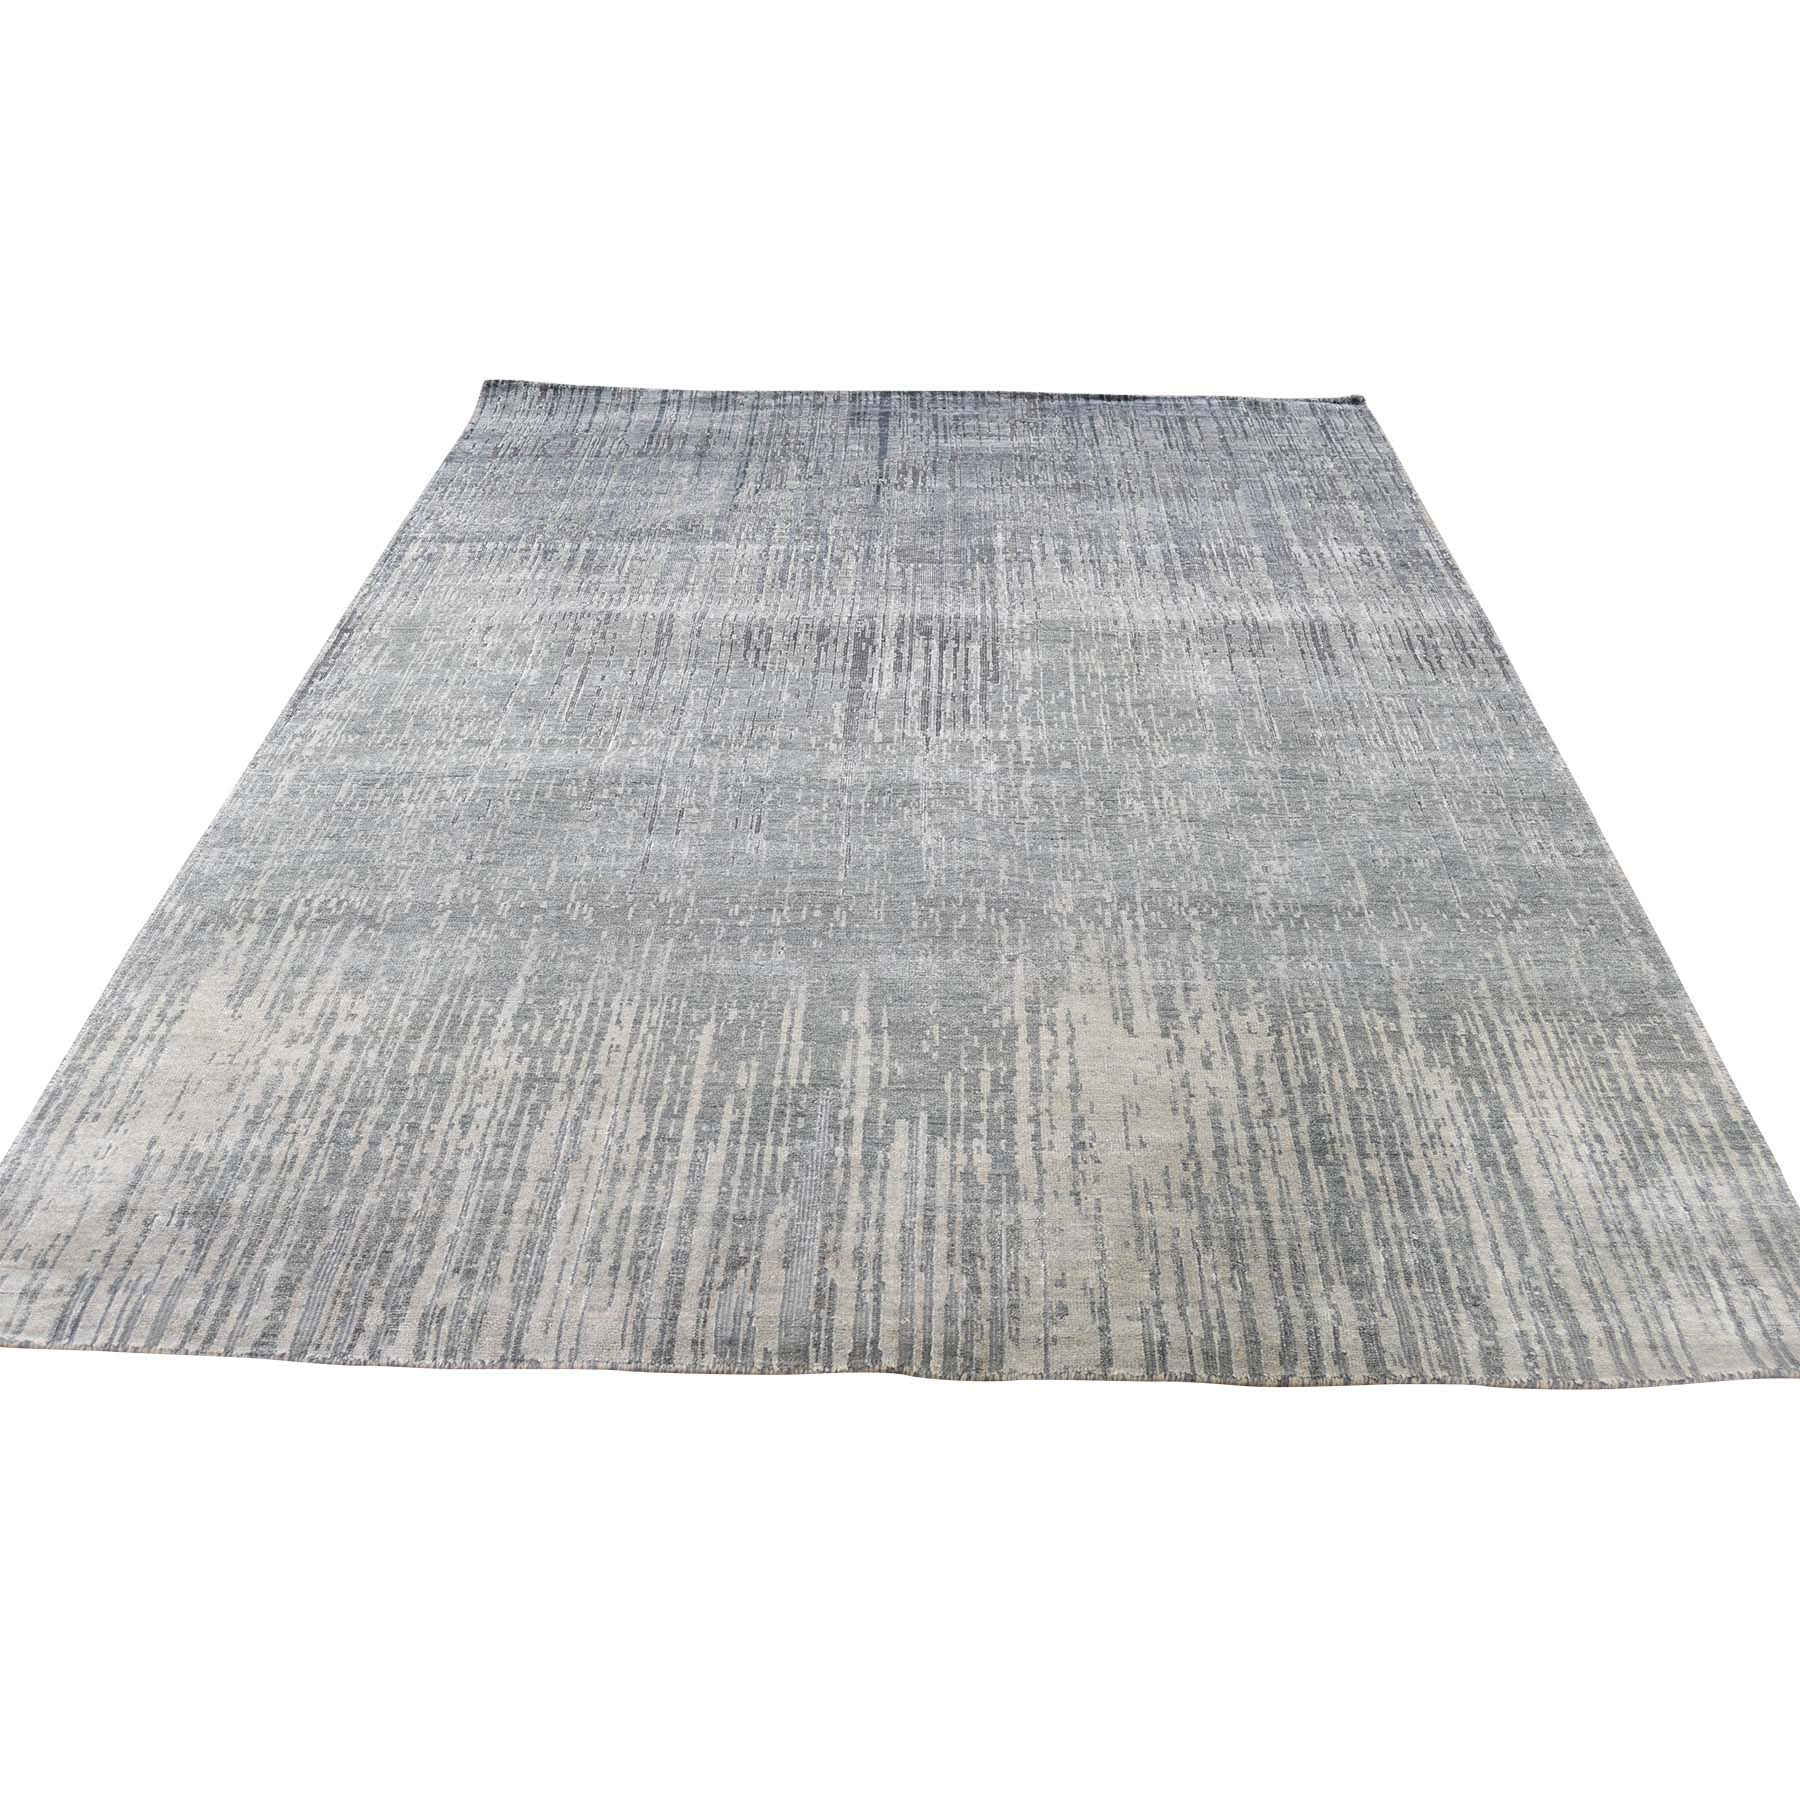 Mid Century Modern Collection Hand Knotted Grey Rug No: 0186824